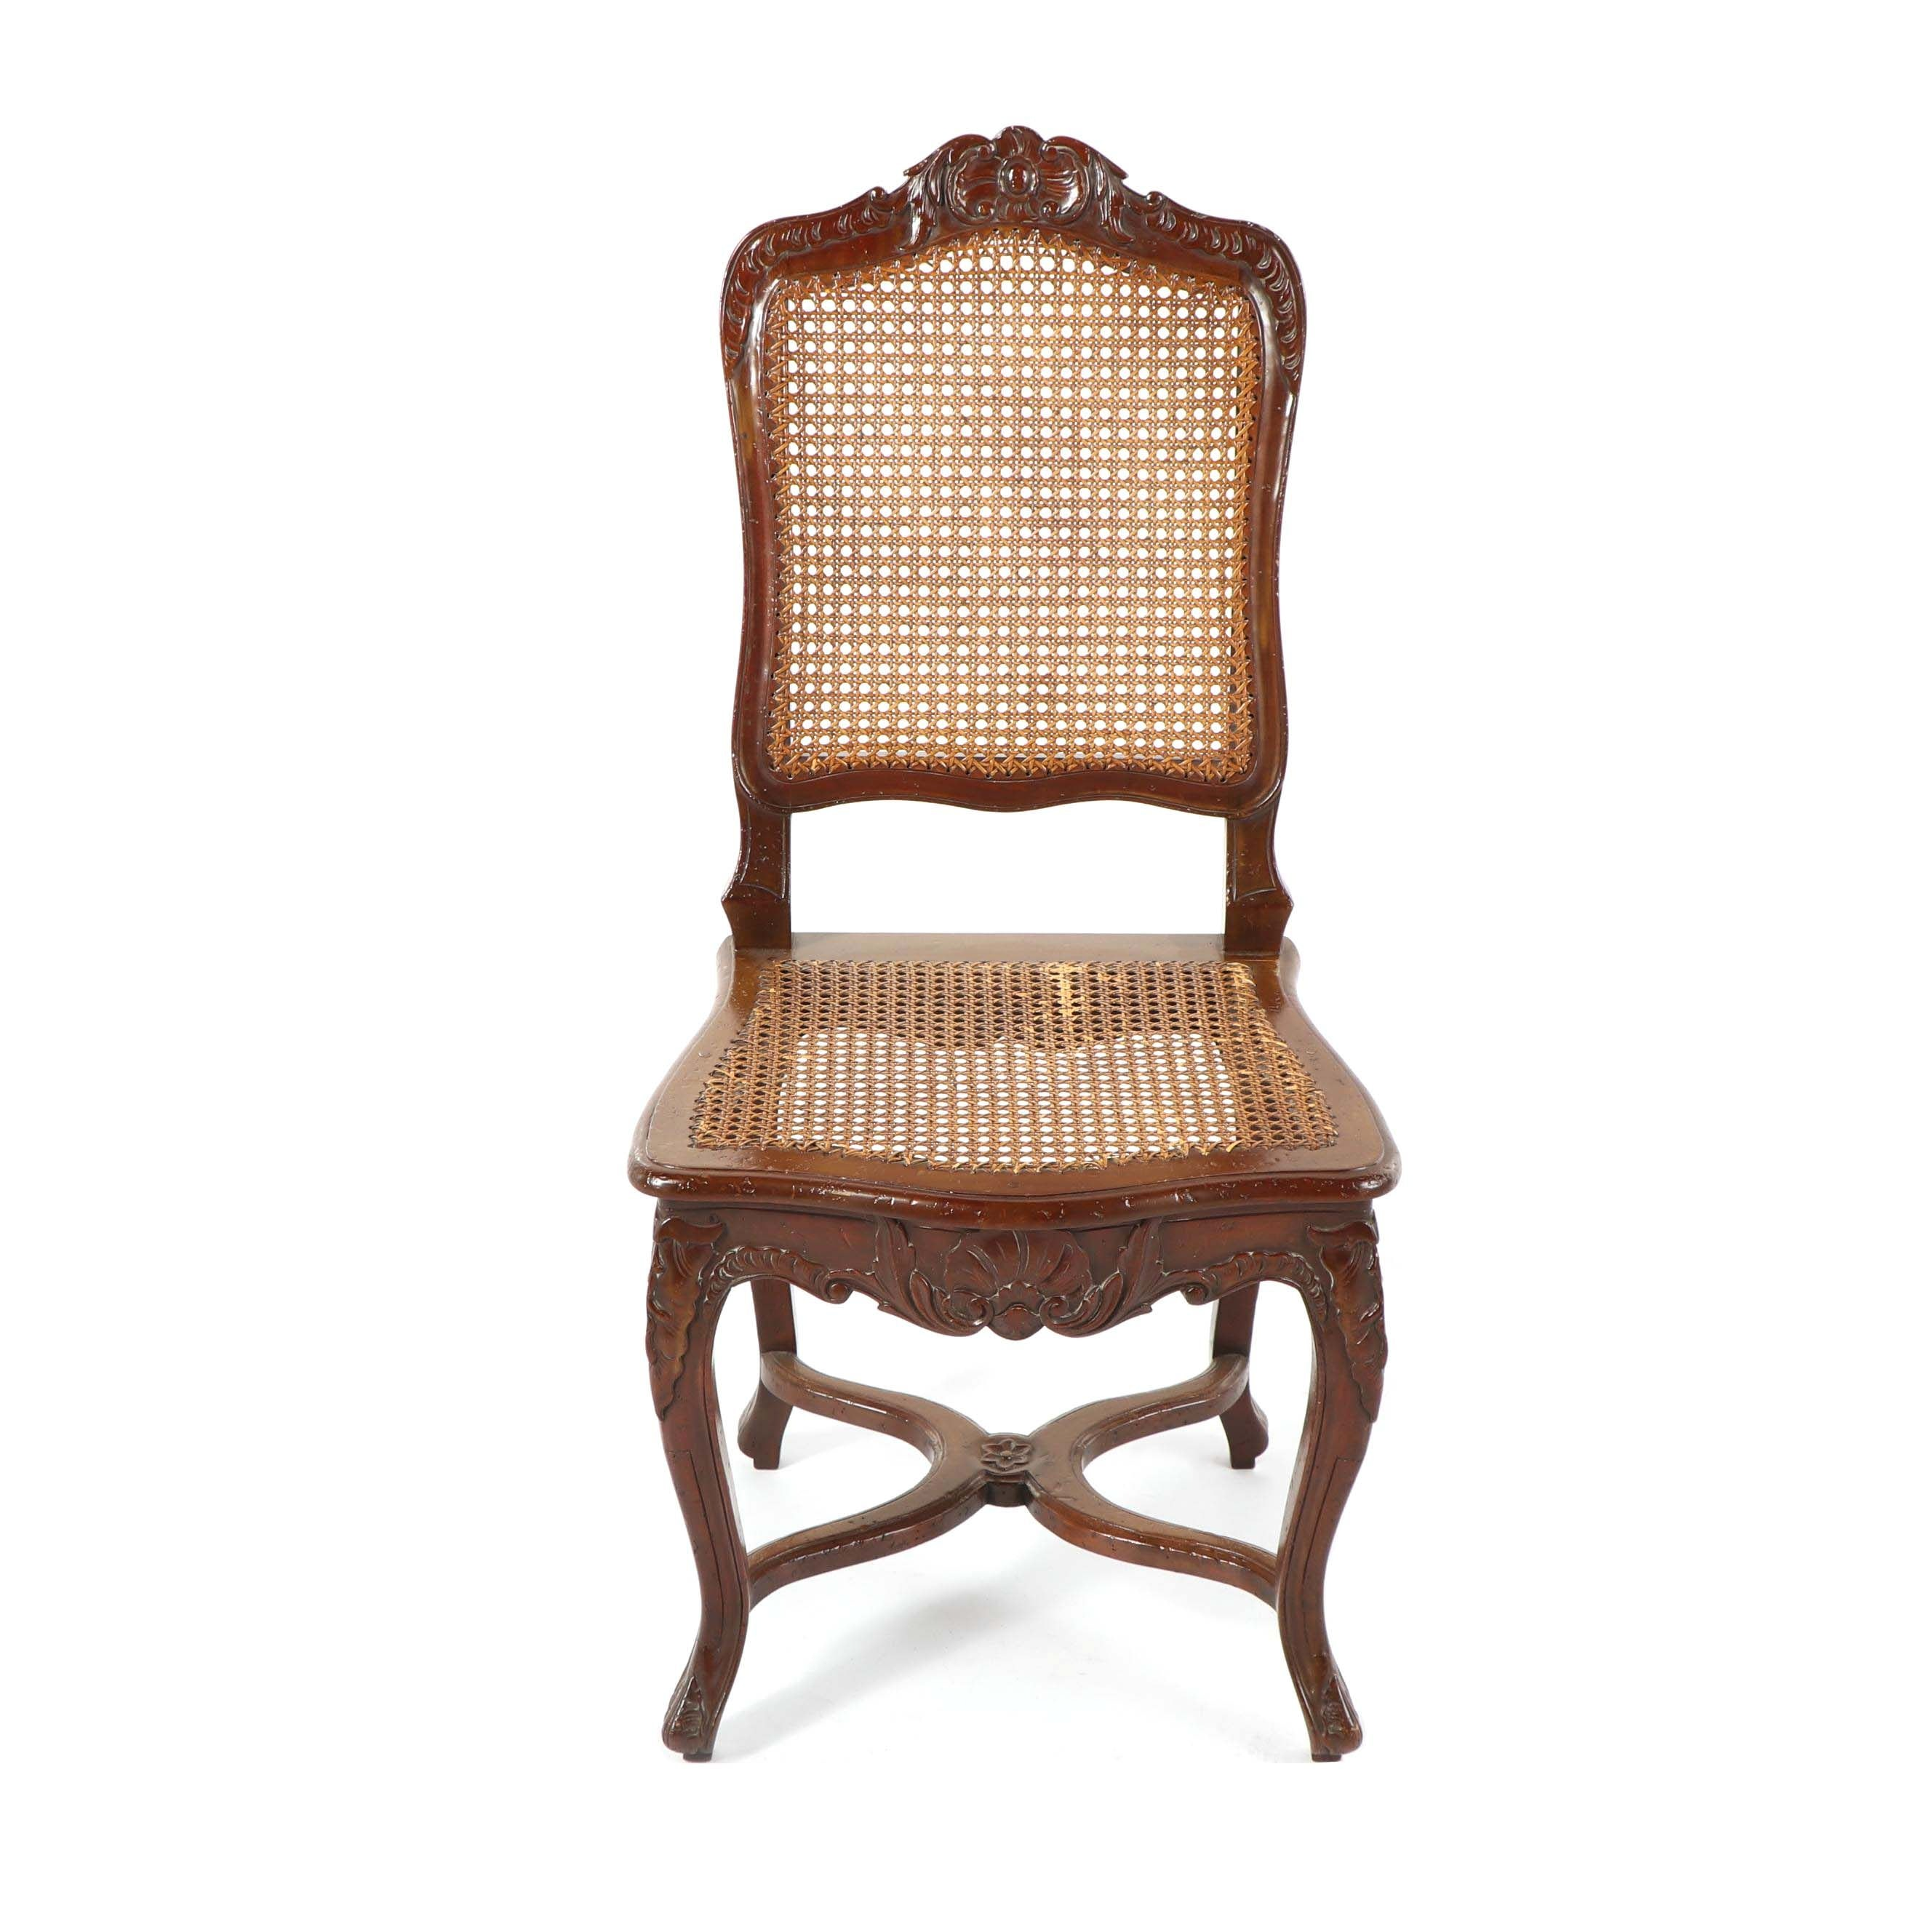 Vintage French Provincial Style Cane Side Chair